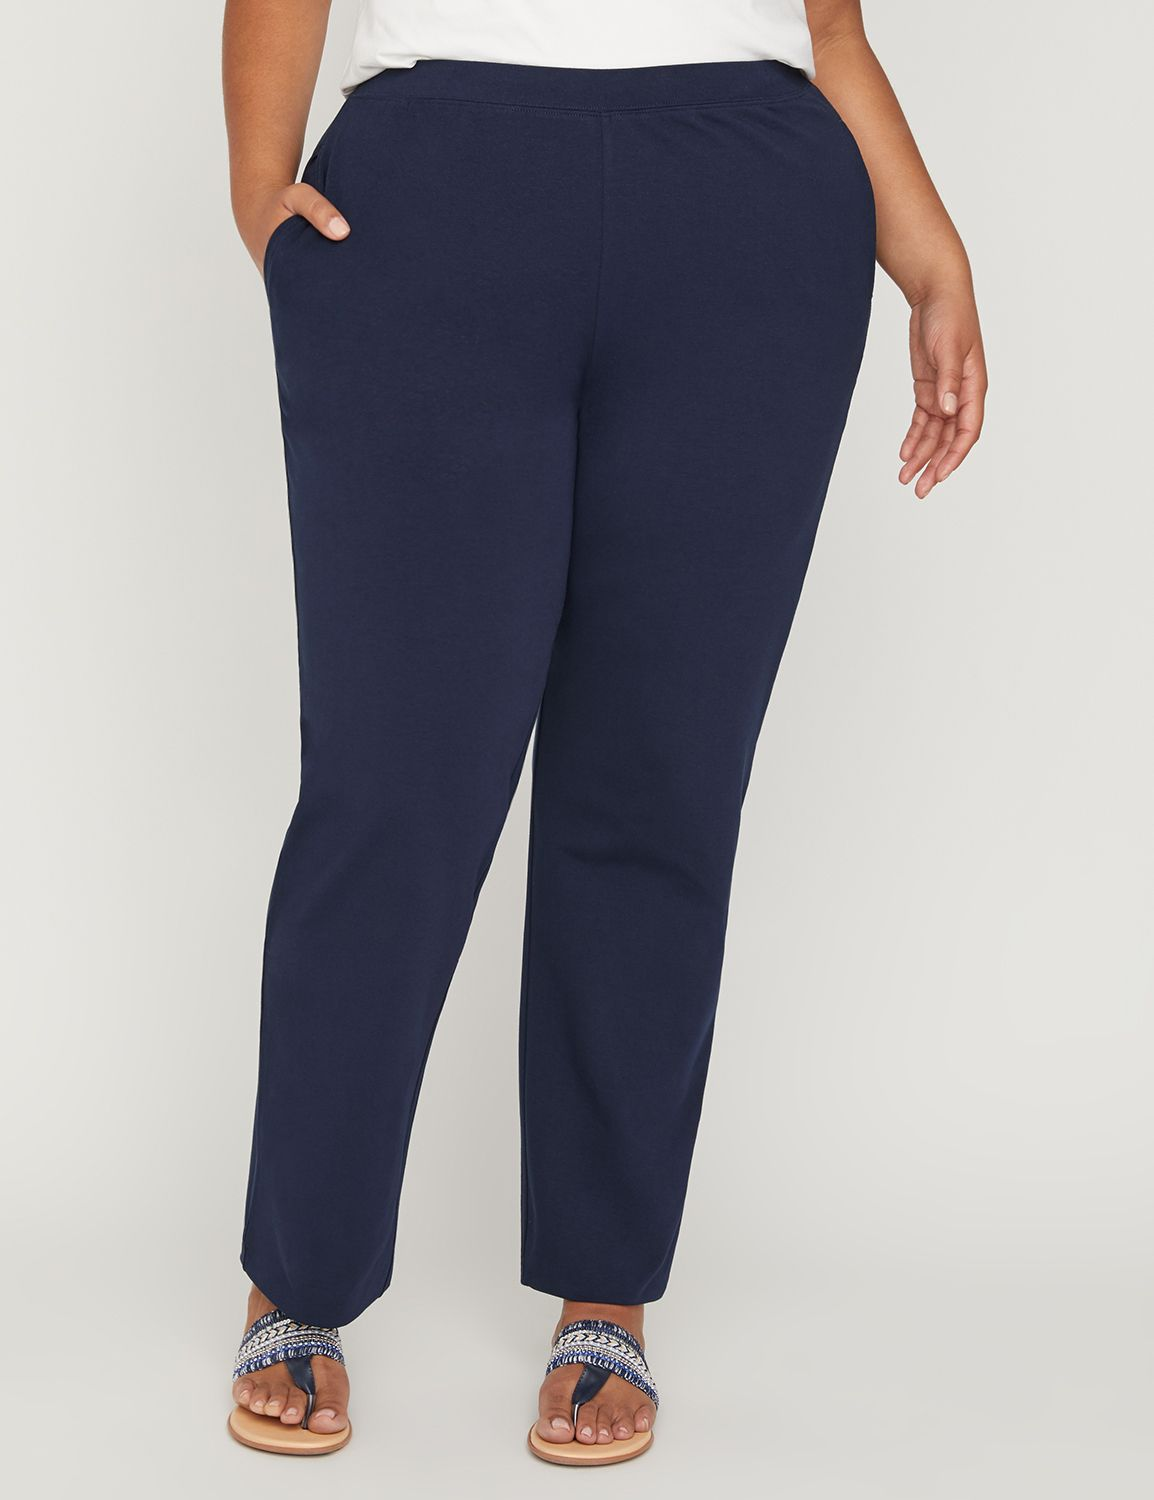 Suprema Knit Pant (Classic Colors) Suprema Knit Pant (Classic Colors) MP-300009649